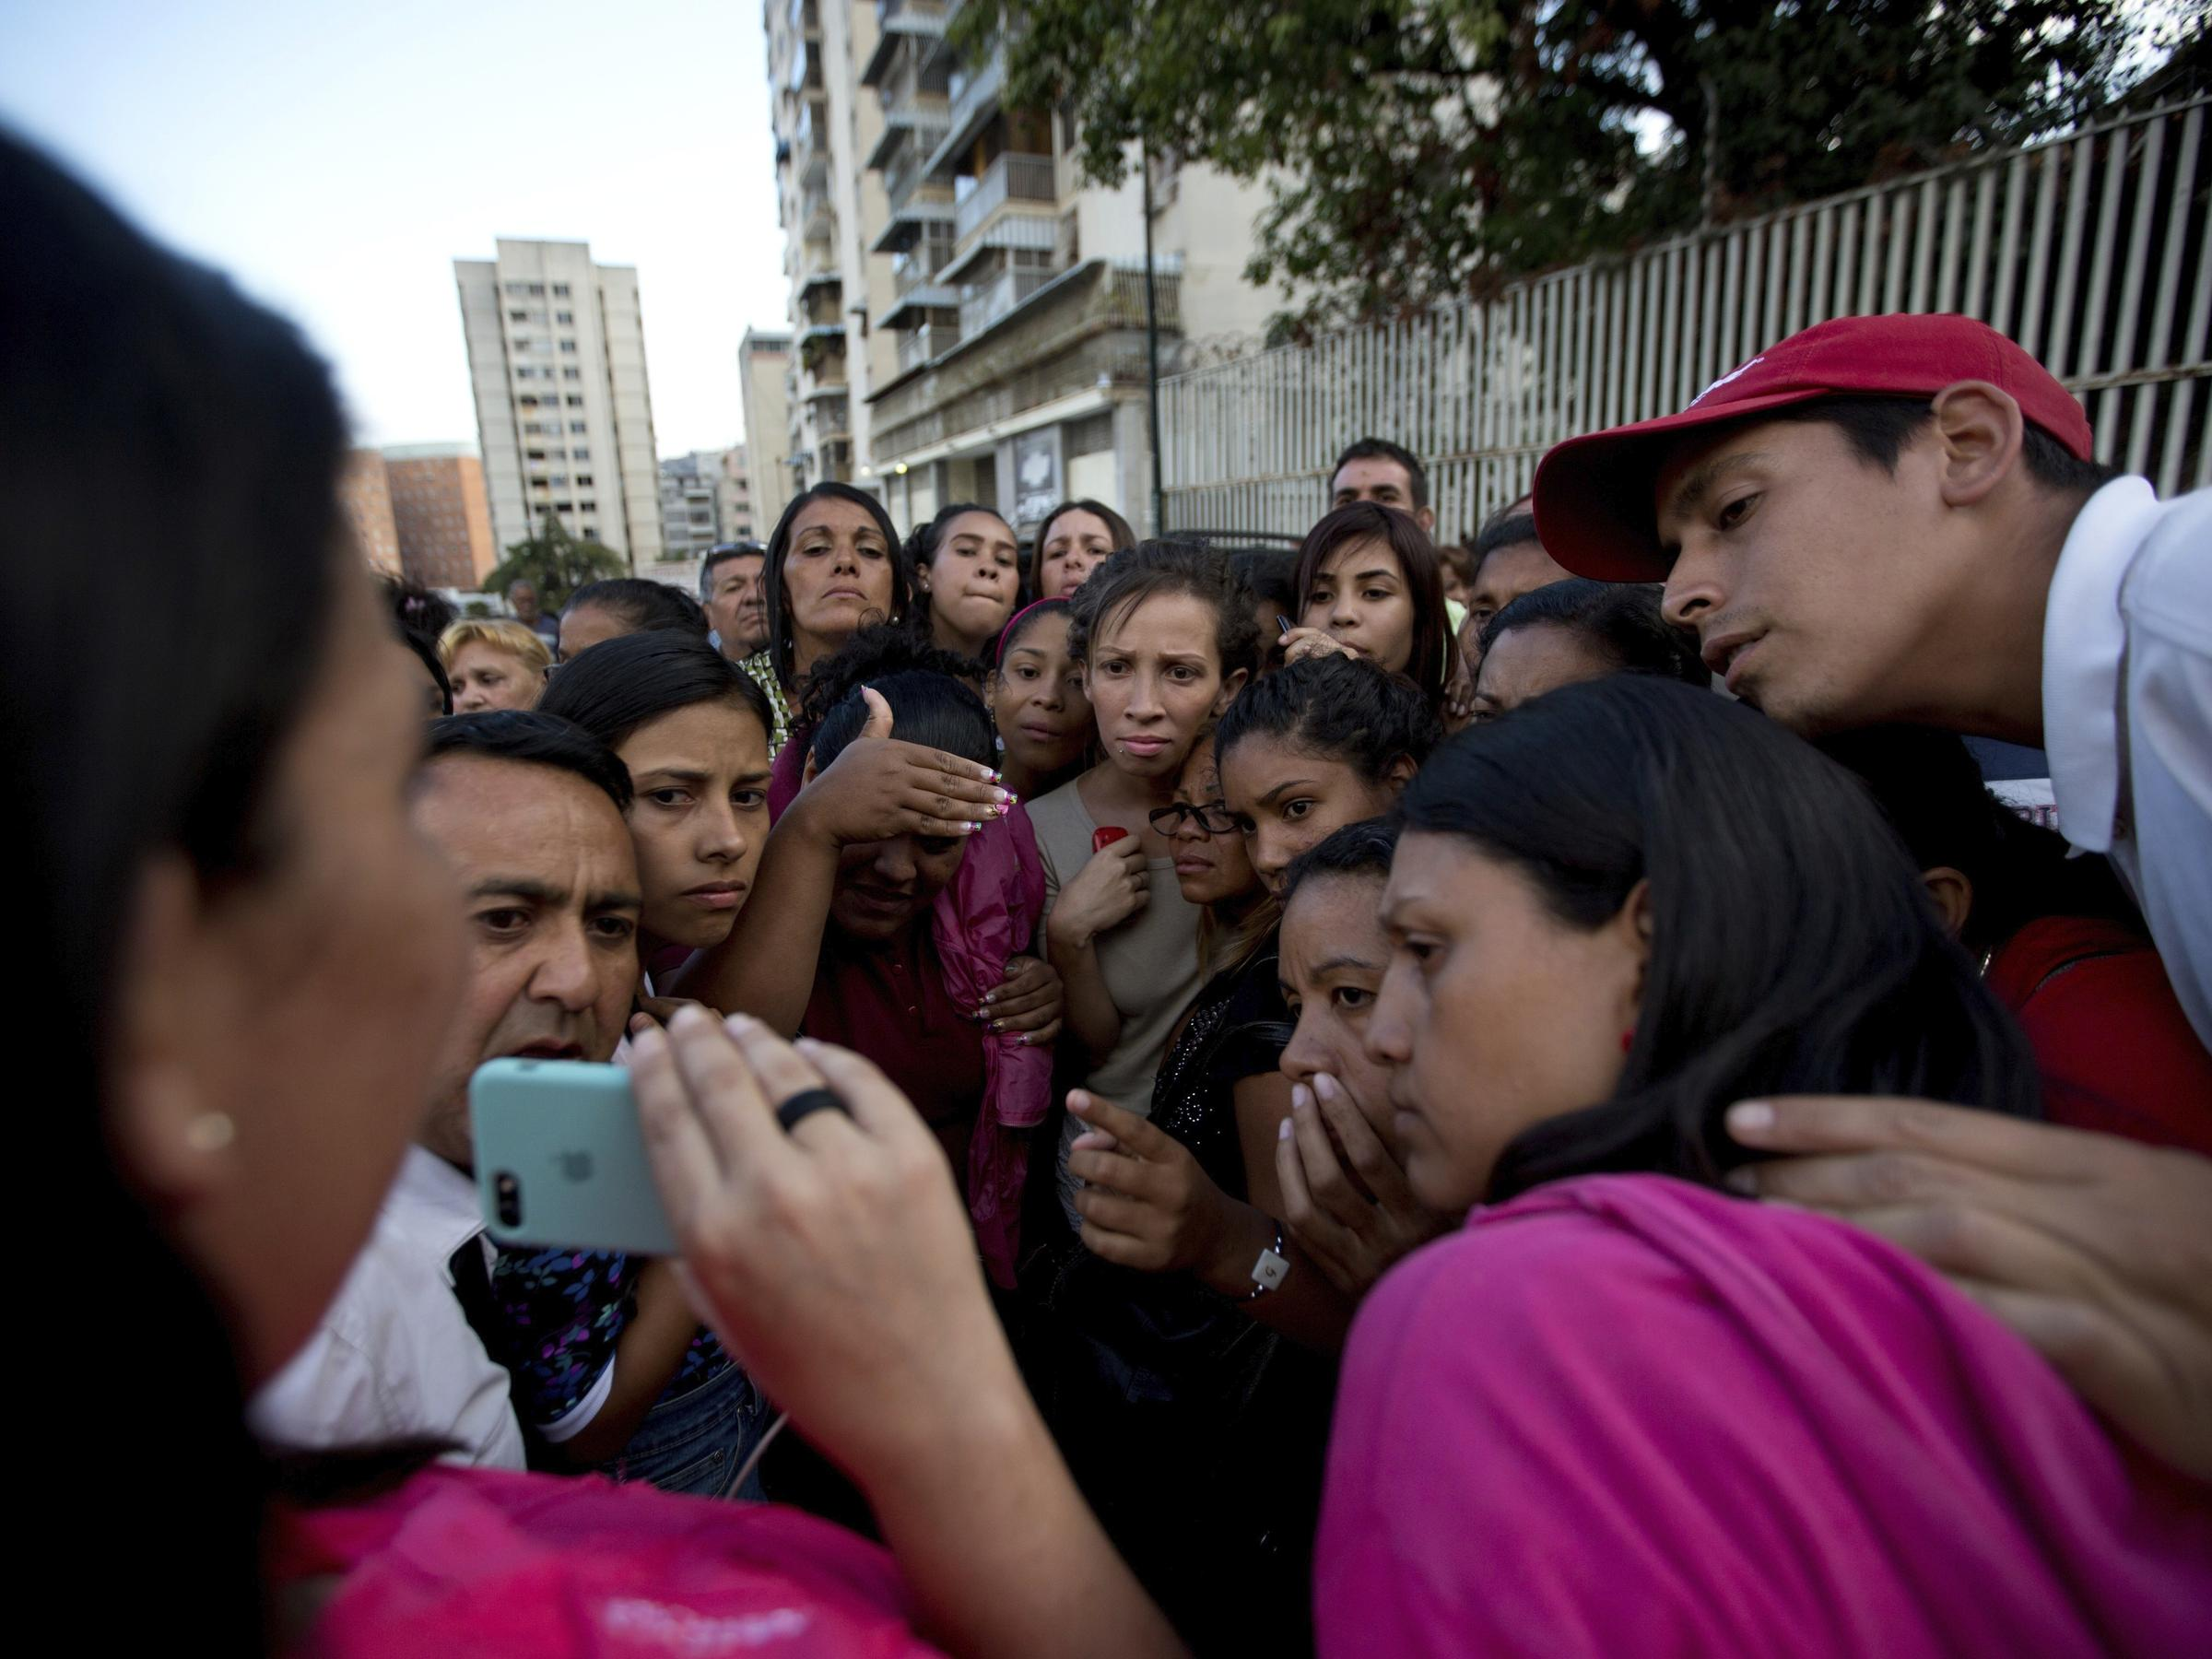 Relatives of prisoners watch in a mobile phone a video released by the prisoners outside of Venezuelan political police headquarters SEBIN in Caracas Venezuela on Wednesday